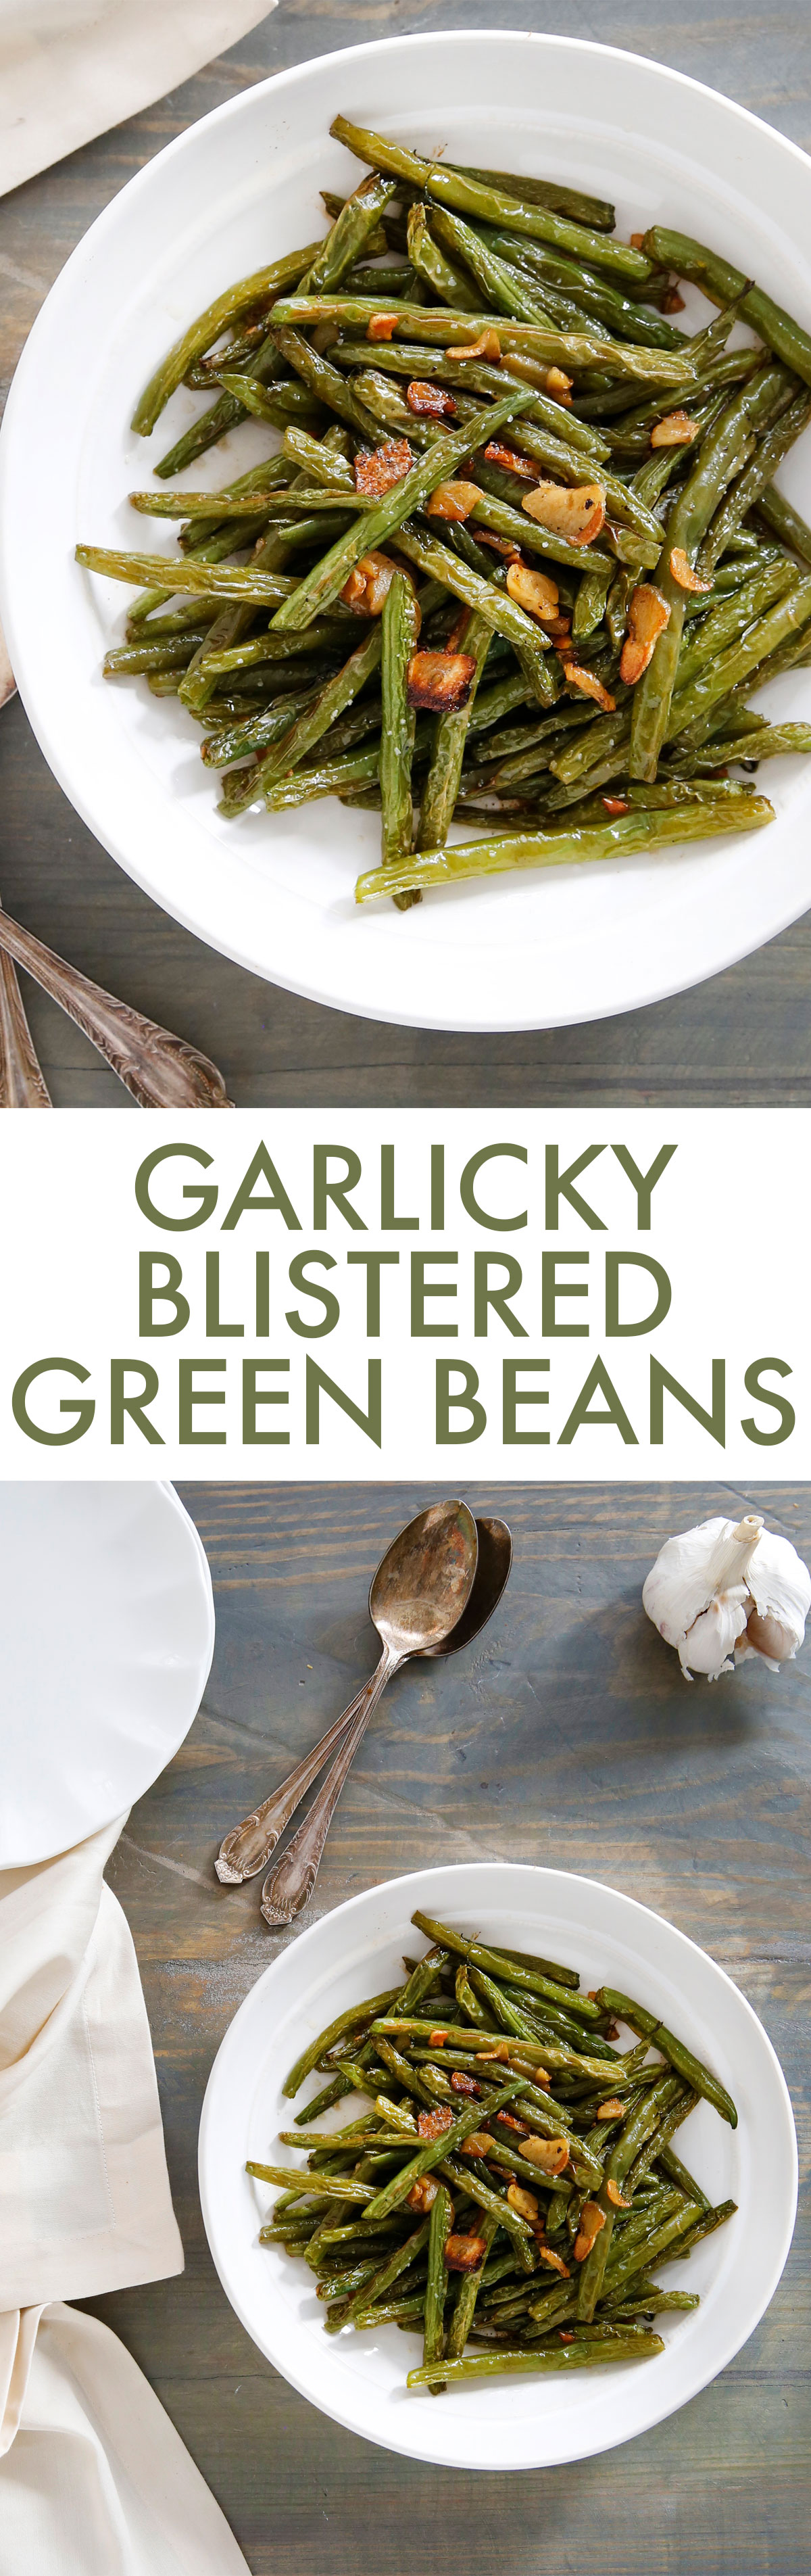 Garlicky Blistered Green Beans - Lexi's Clean Kitchen #holiday #weeknightside #whole30 #greenbeans #garlic